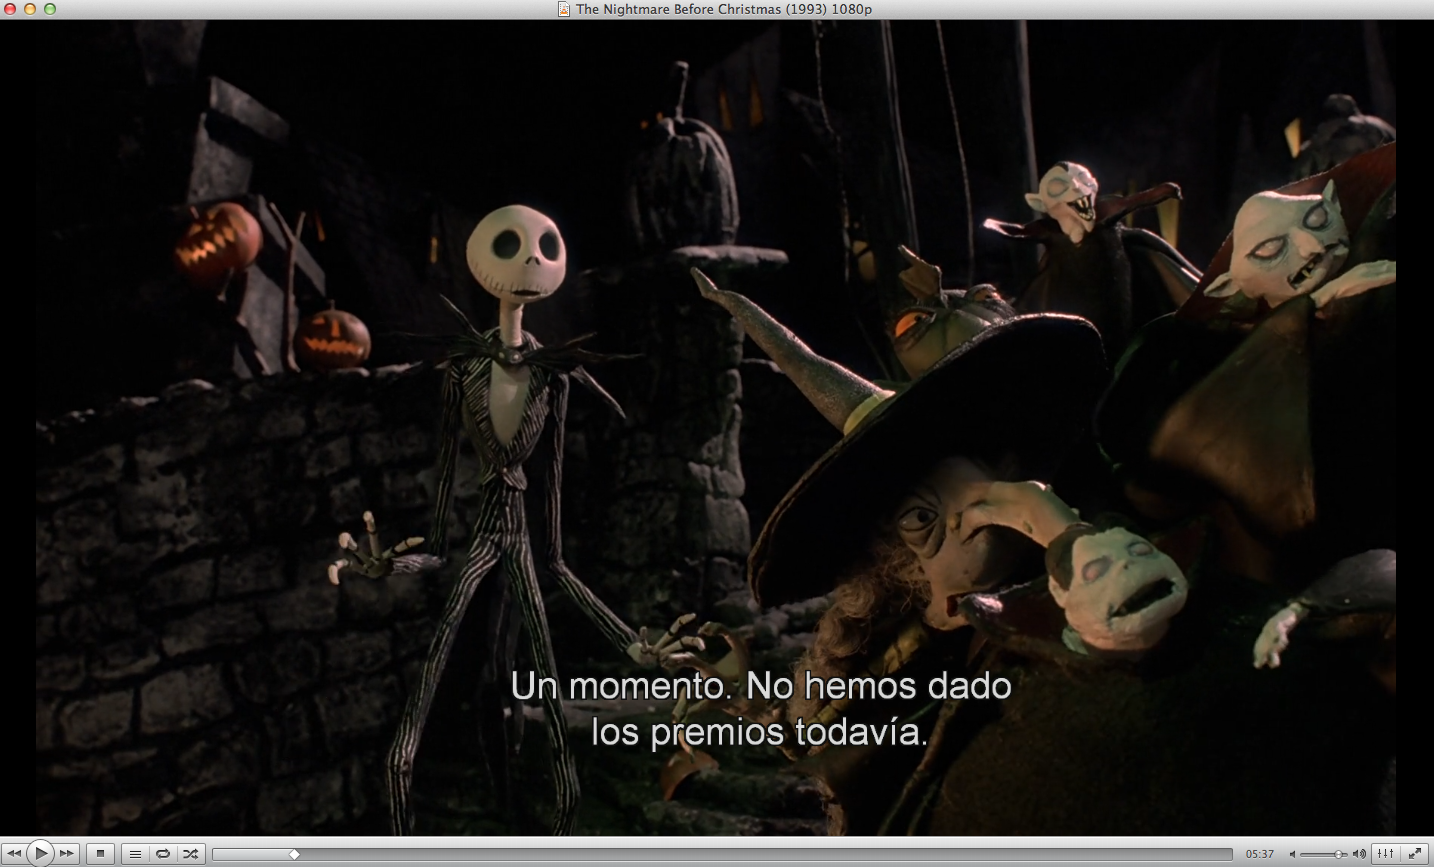 Captura 1 | The Nightmare Before Christmas (1993) 1080p | Pinterest